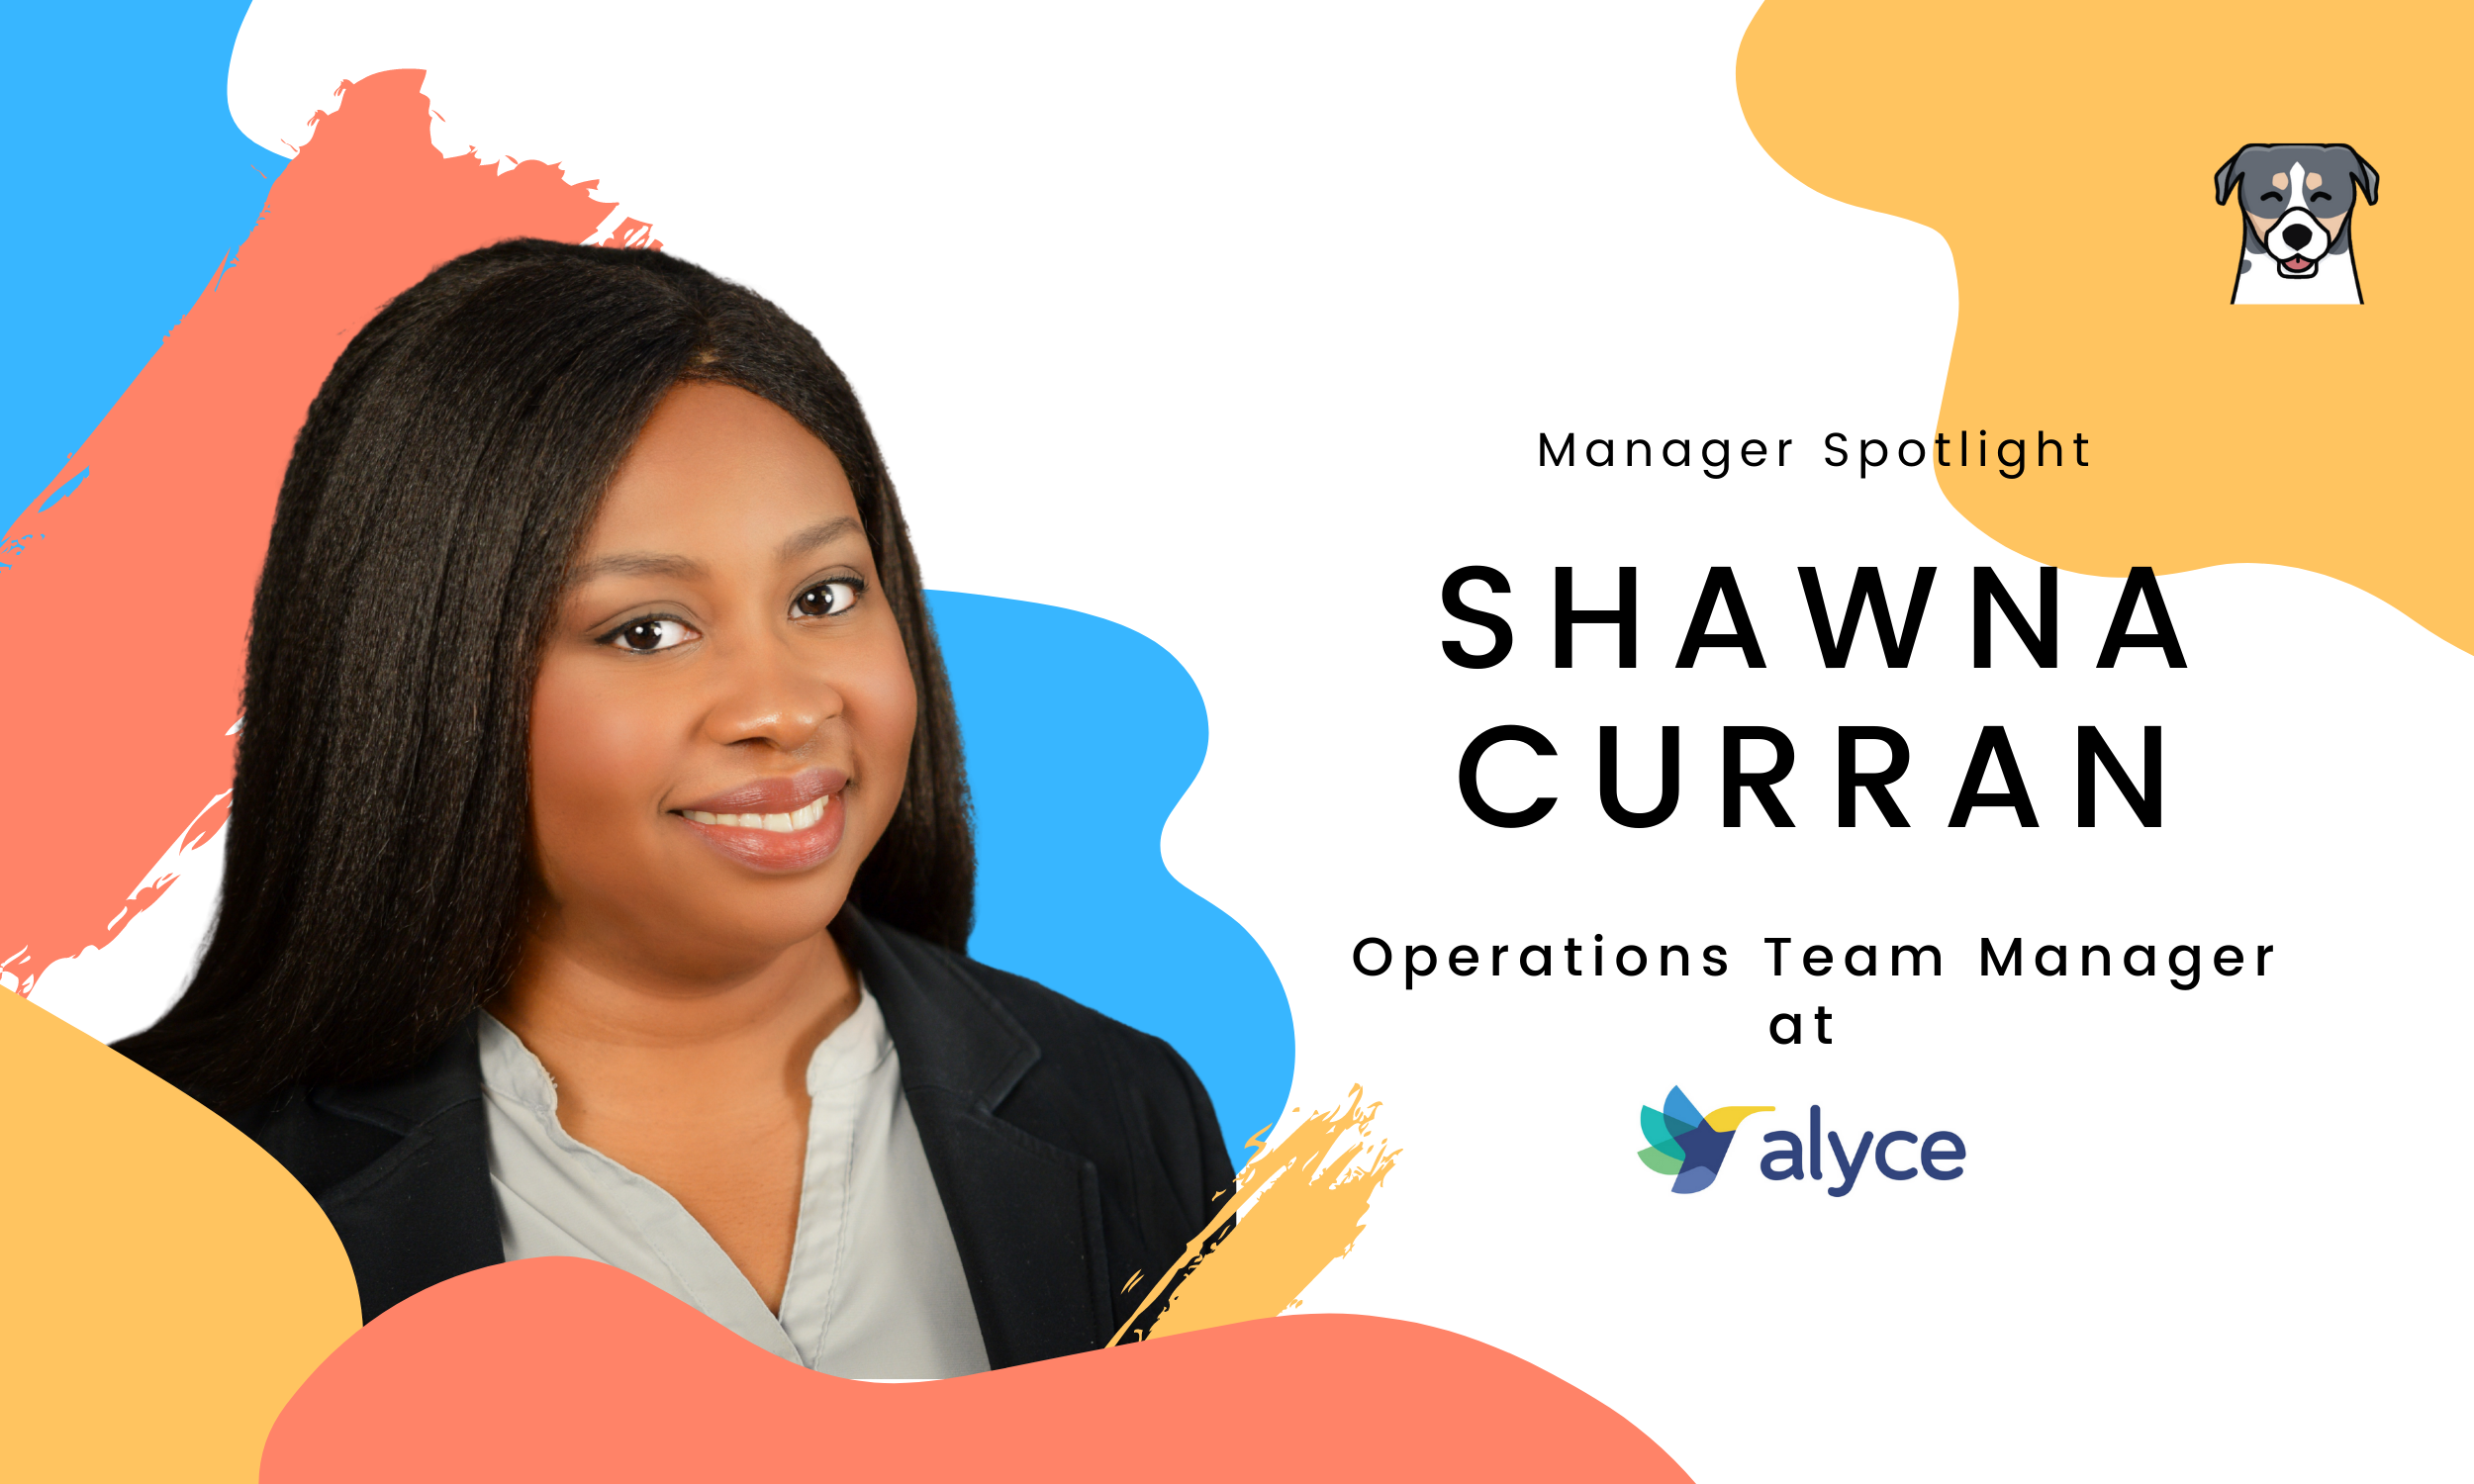 This week we spoke to Shawna Curran, an Operations Manager at Alyce. She discusses the importance of gratitude, setting boundaries for work-life harmony, and the art of caring for your people.